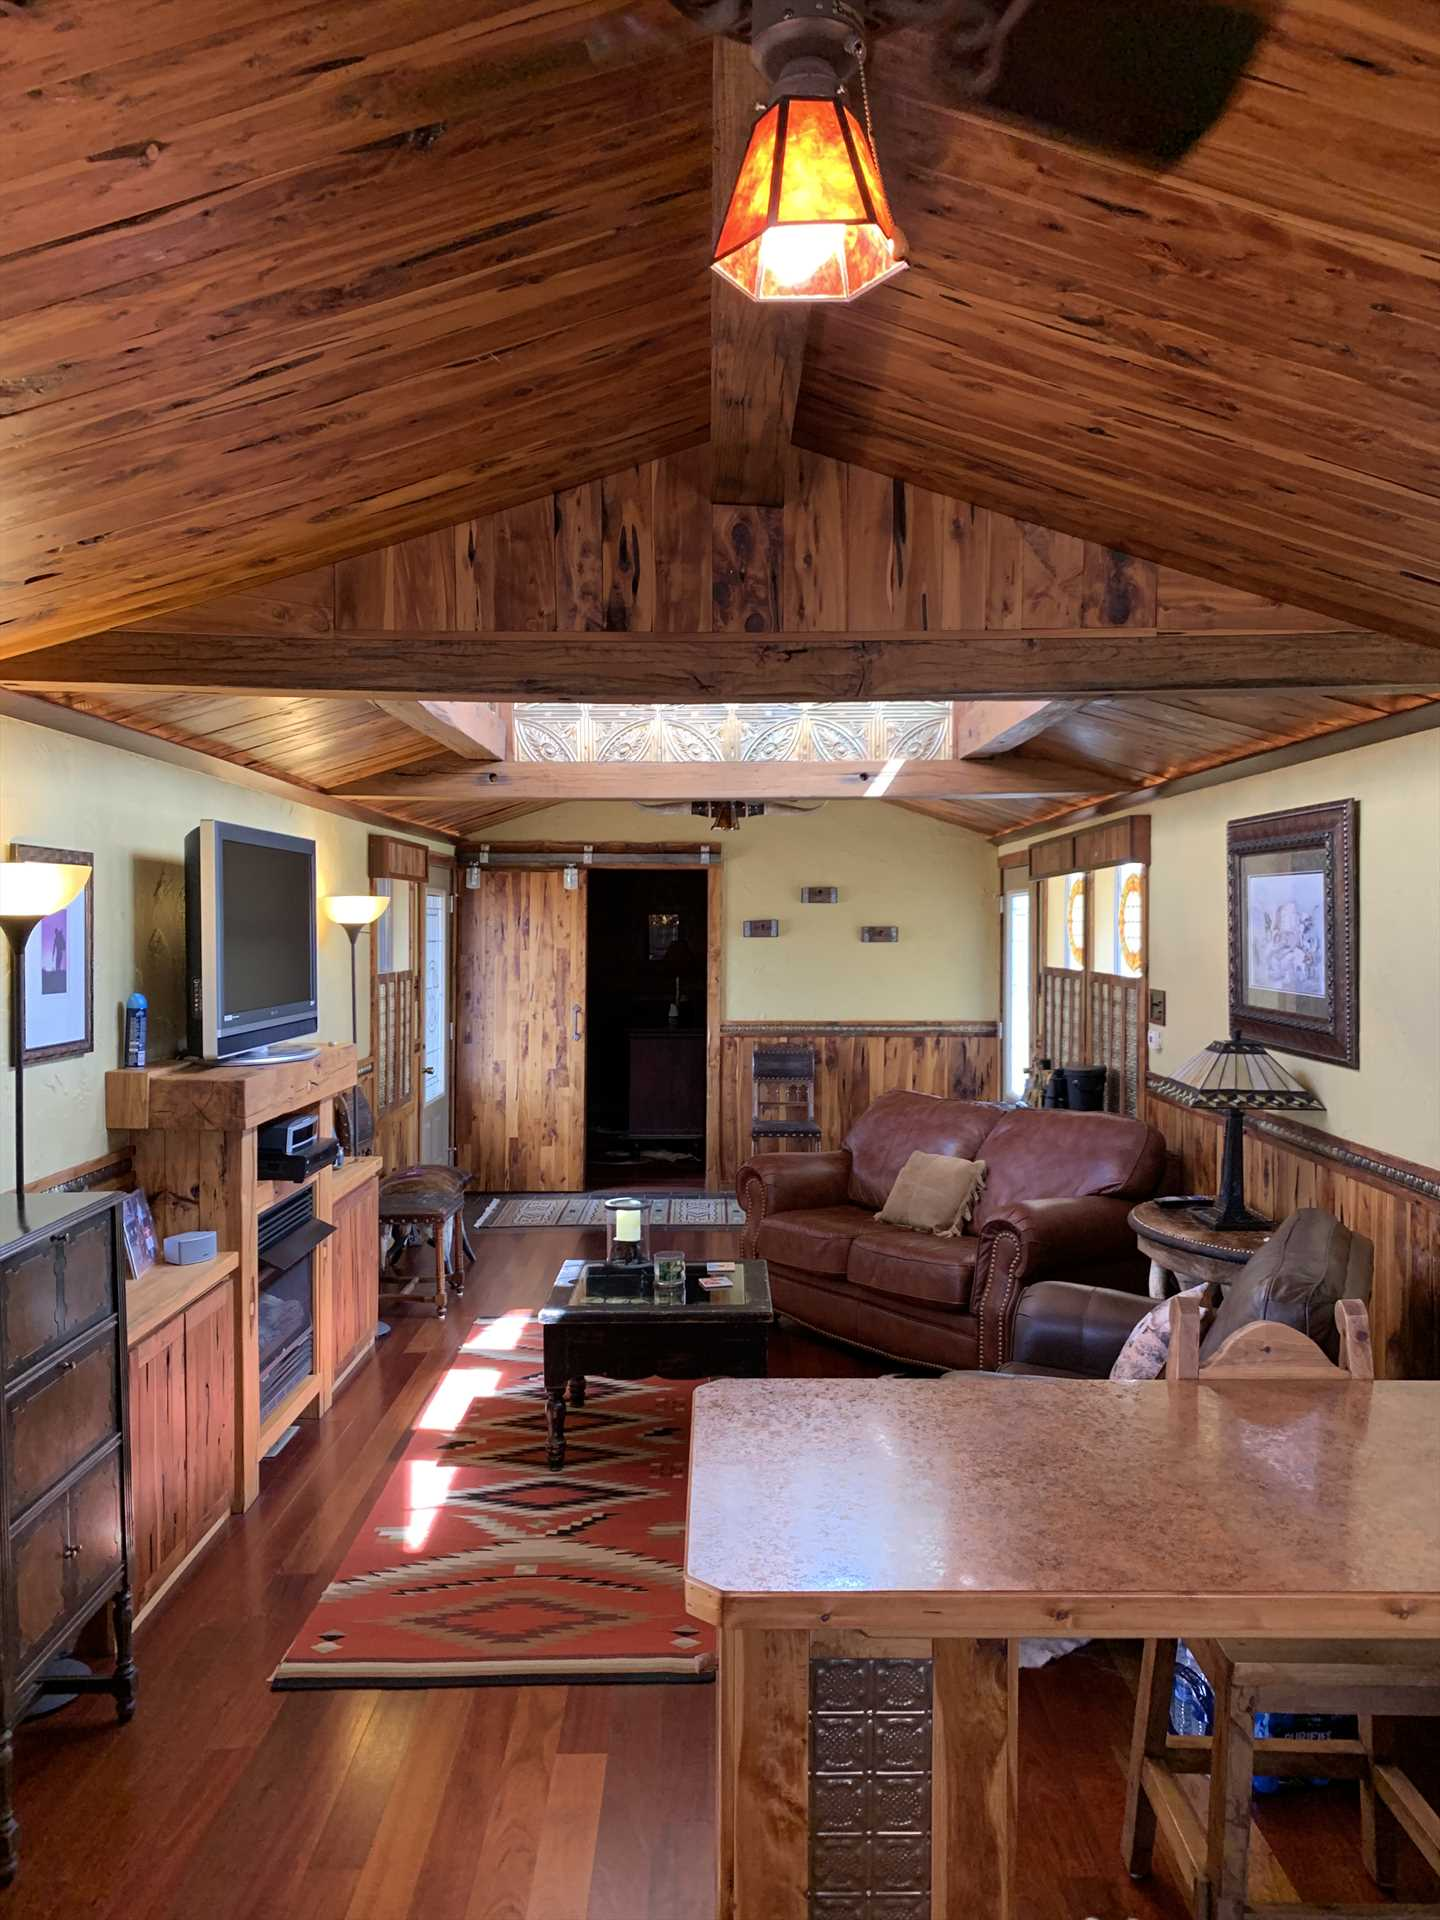 Vivid southwestern flair shines through in every detail and furnishing in the colorful and comfortable Antler Cabin.